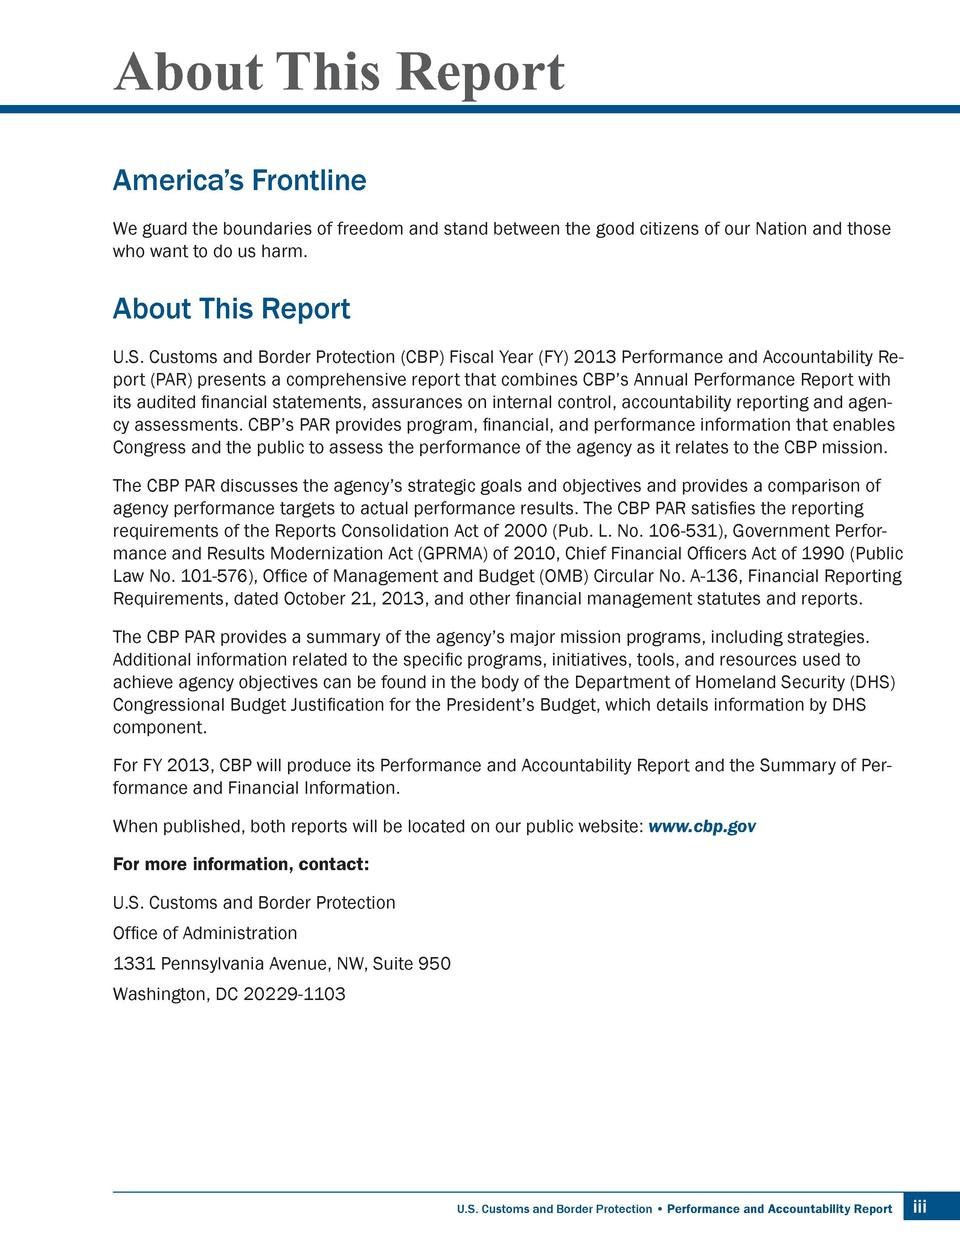 About This Report America   s Frontline We guard the boundaries of freedom and stand between the good citizens of our Nati...